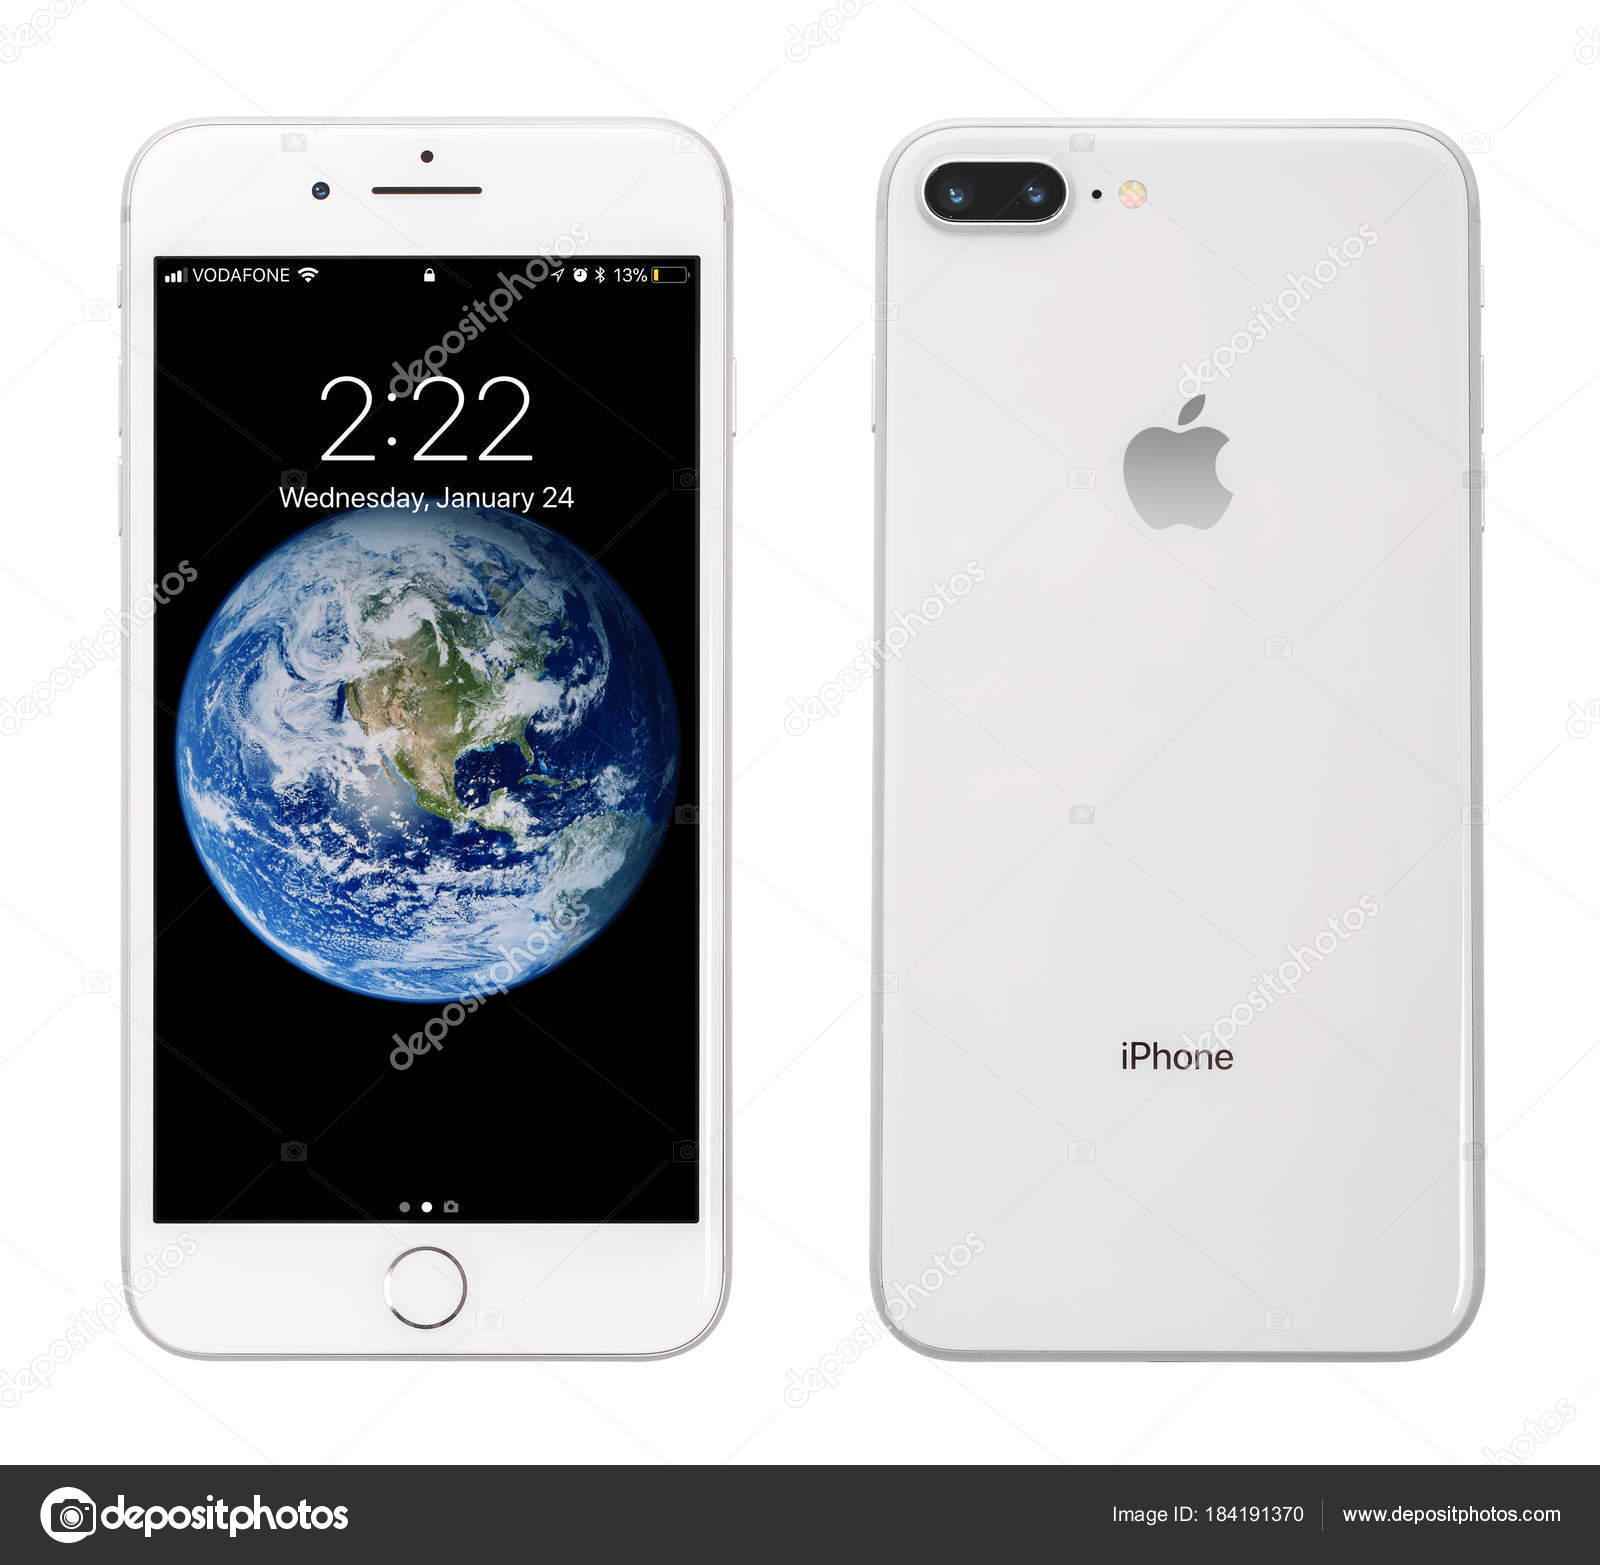 Wallpapers Iphone 8 Hd Apple Iphone 8 Plus Silver Stock